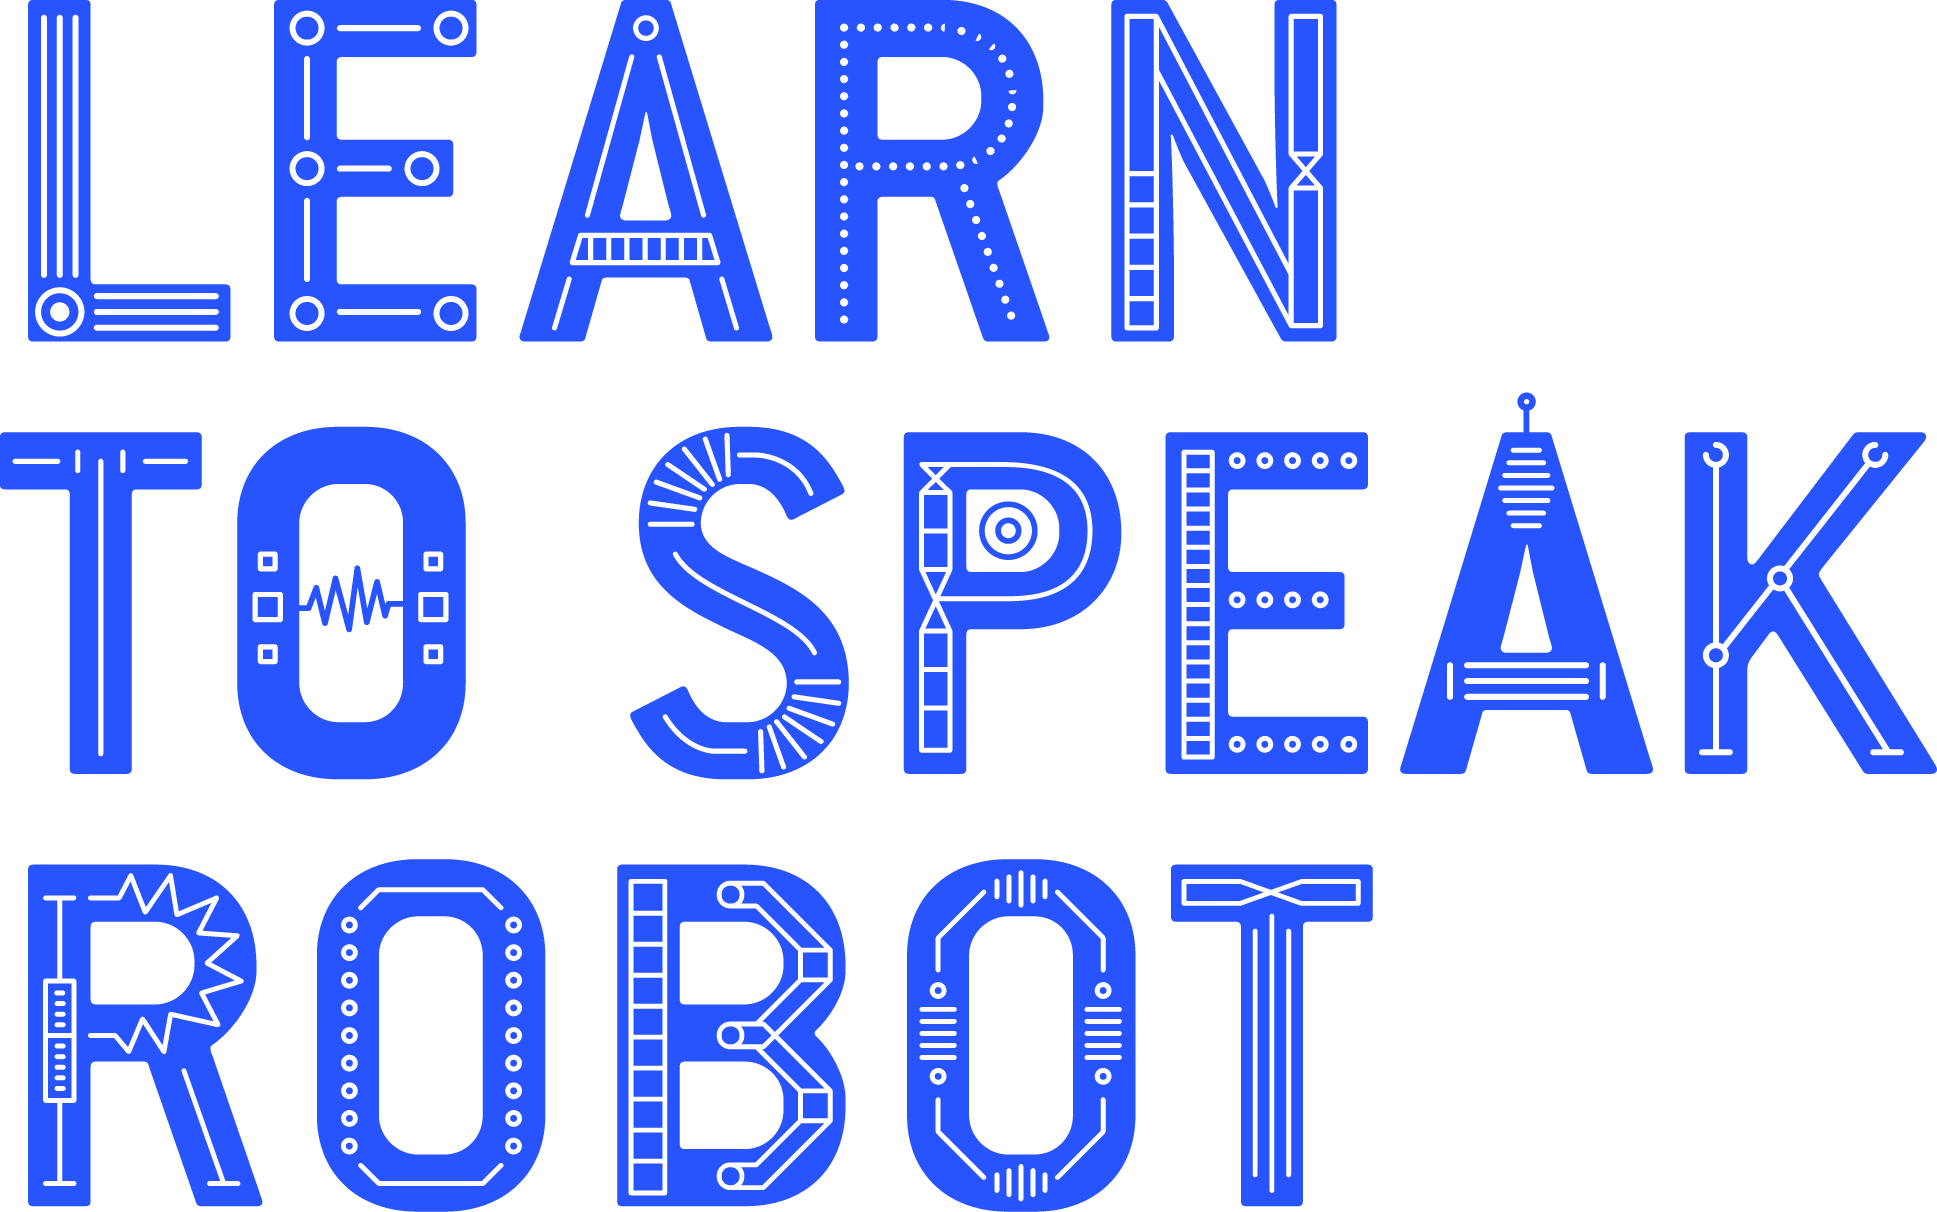 Learn to Speak Robot logo